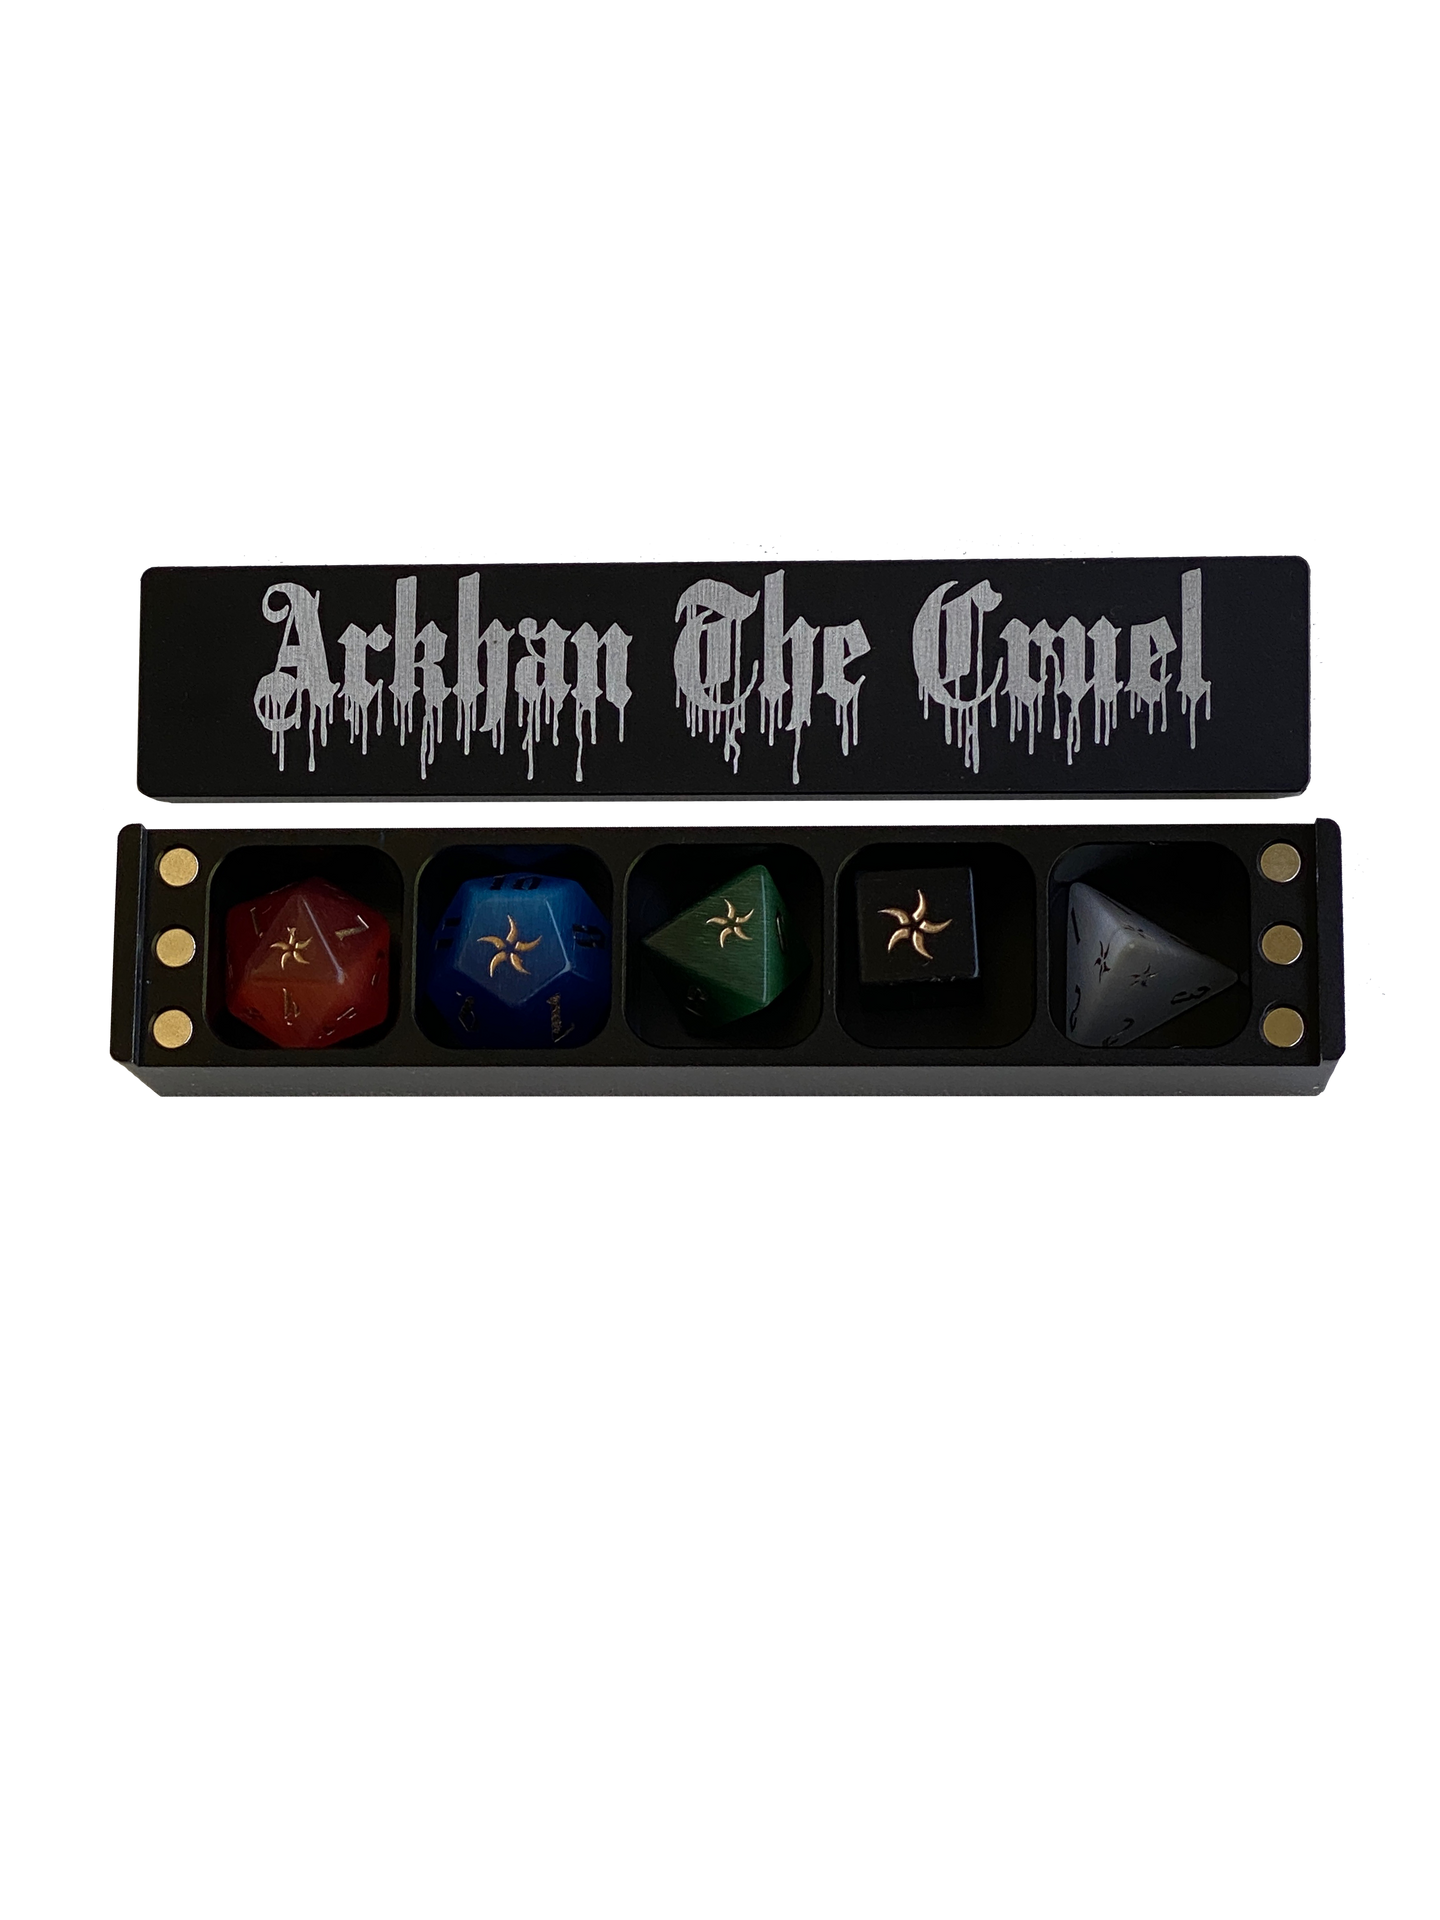 ARKHAN THE CRUEL™ Chromatic Colored (Old School) 5-Dice Set with Black Metal Coffin